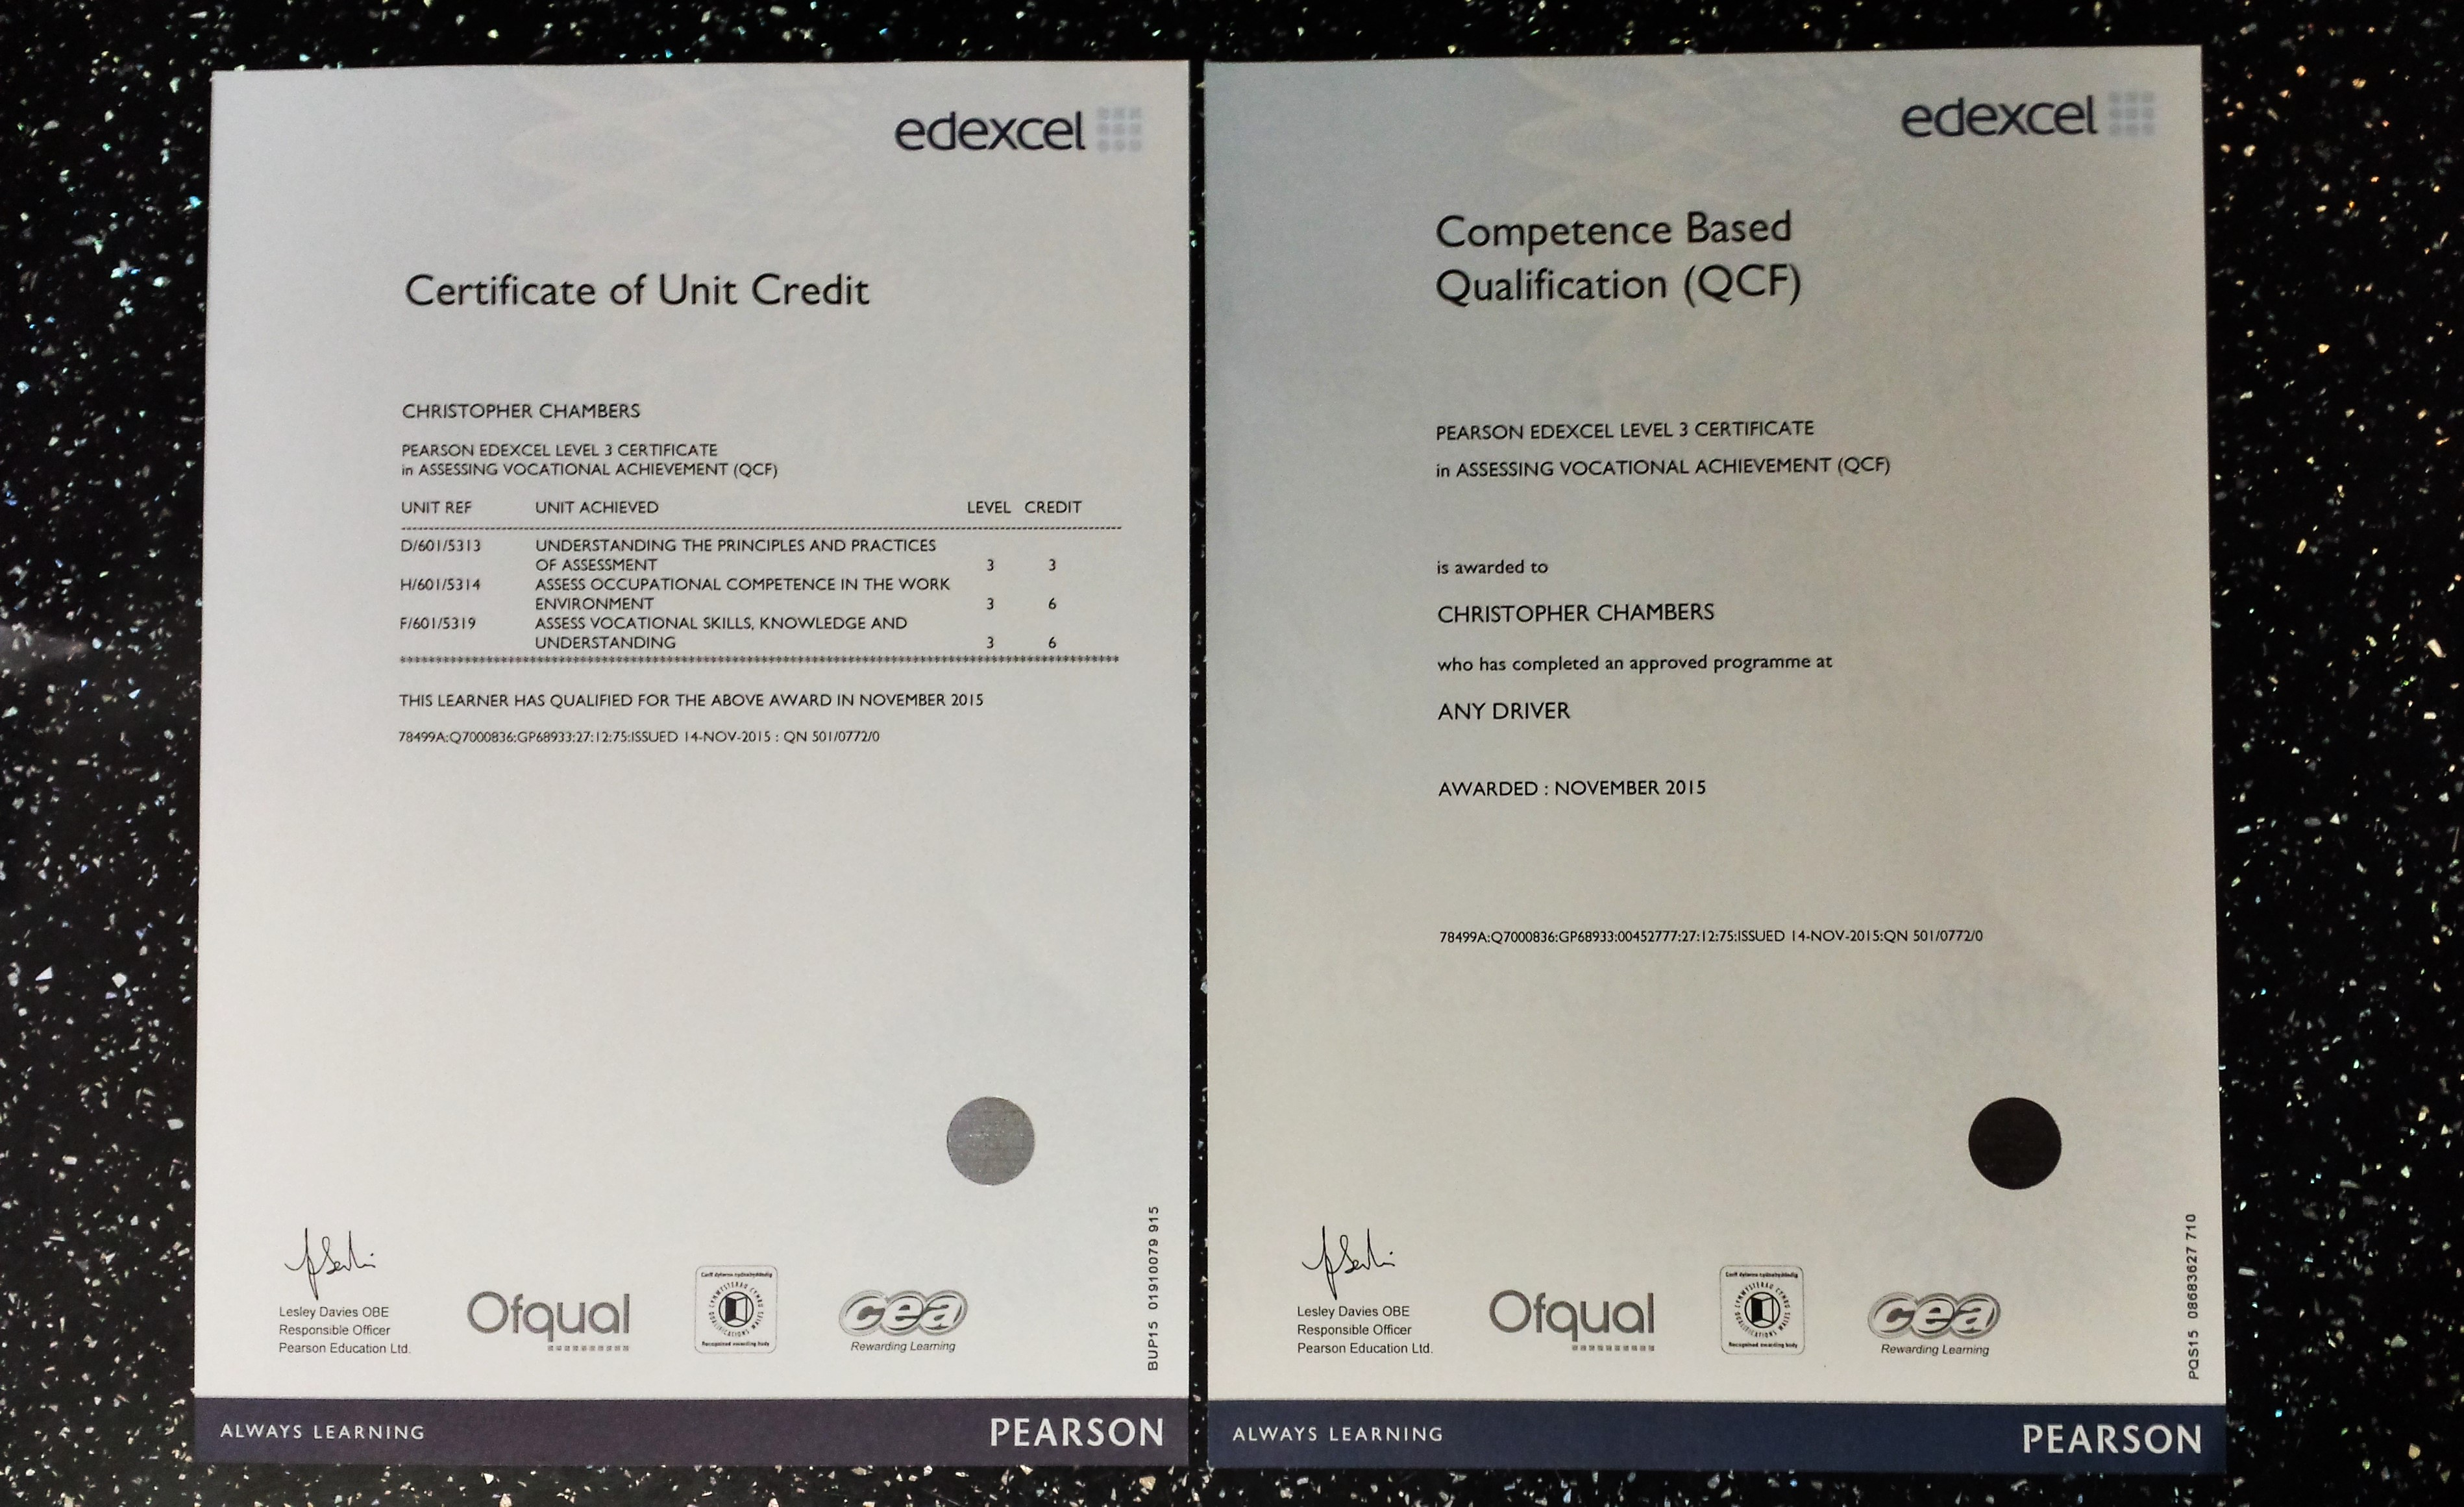 level 3 certificate in assessing vocational